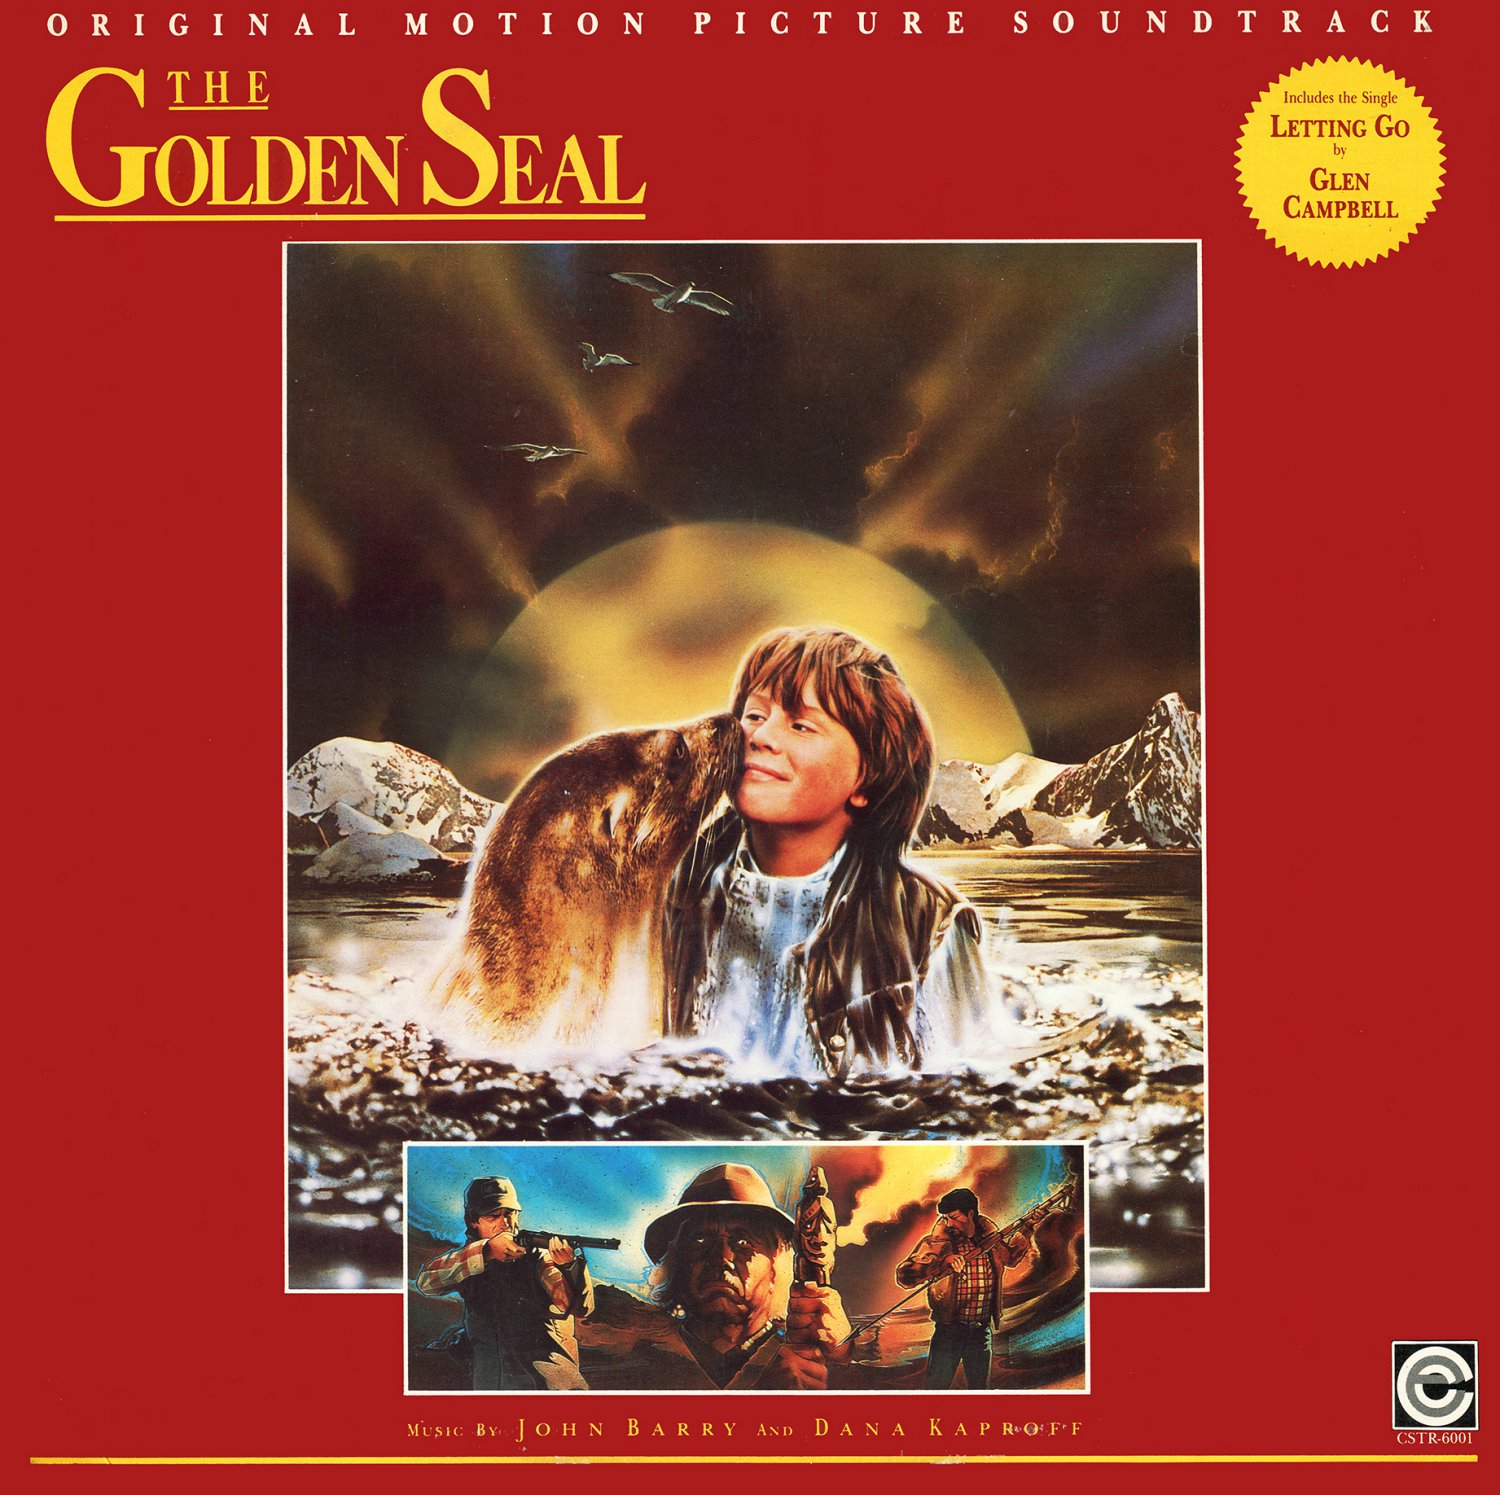 The Golden Seal - Original Soundtrack, John Barry OST LP/CD